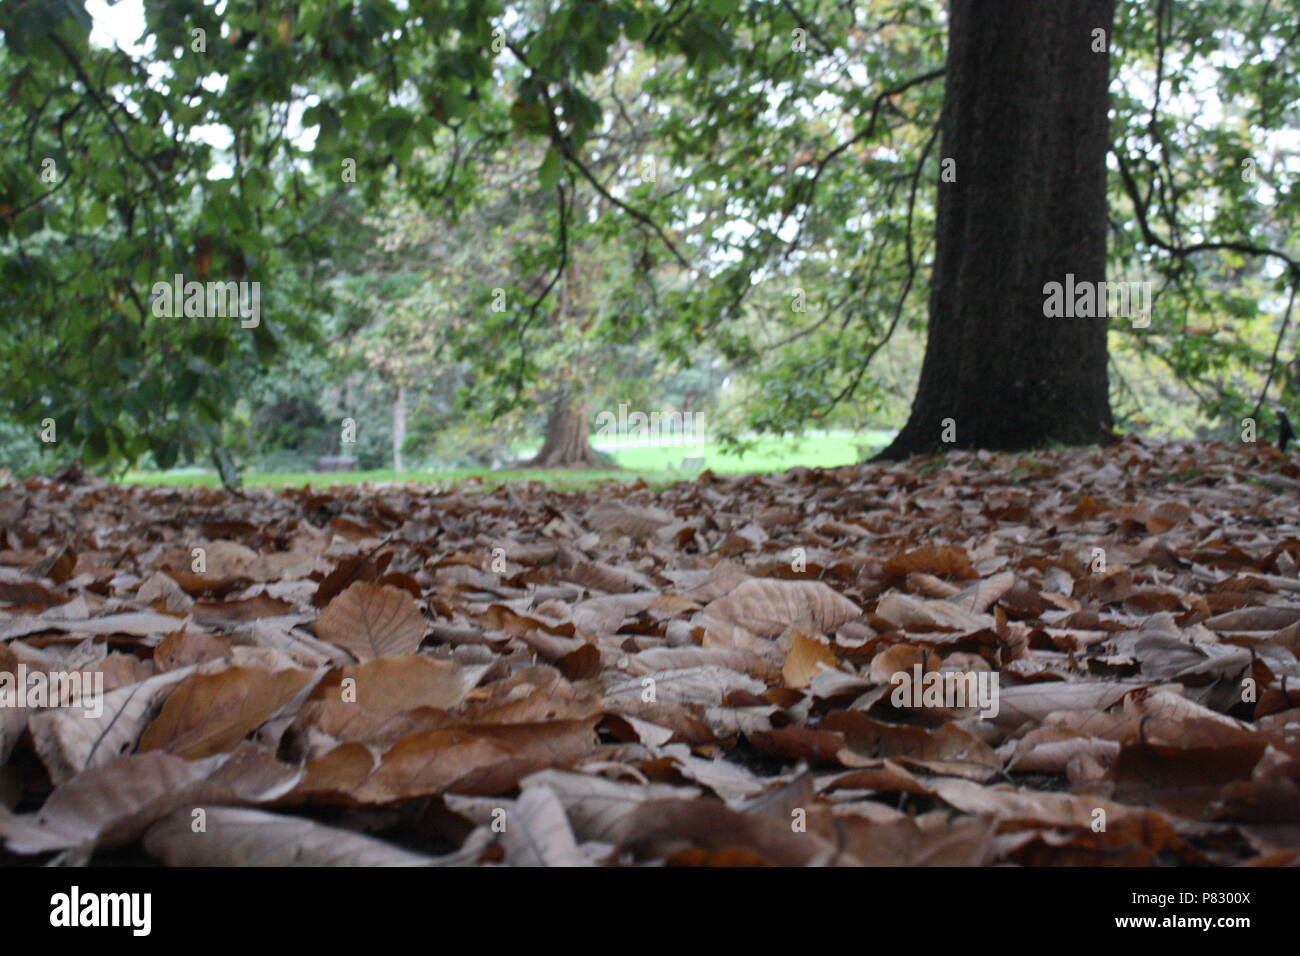 Close up of fallen leaves at the park - Stock Image